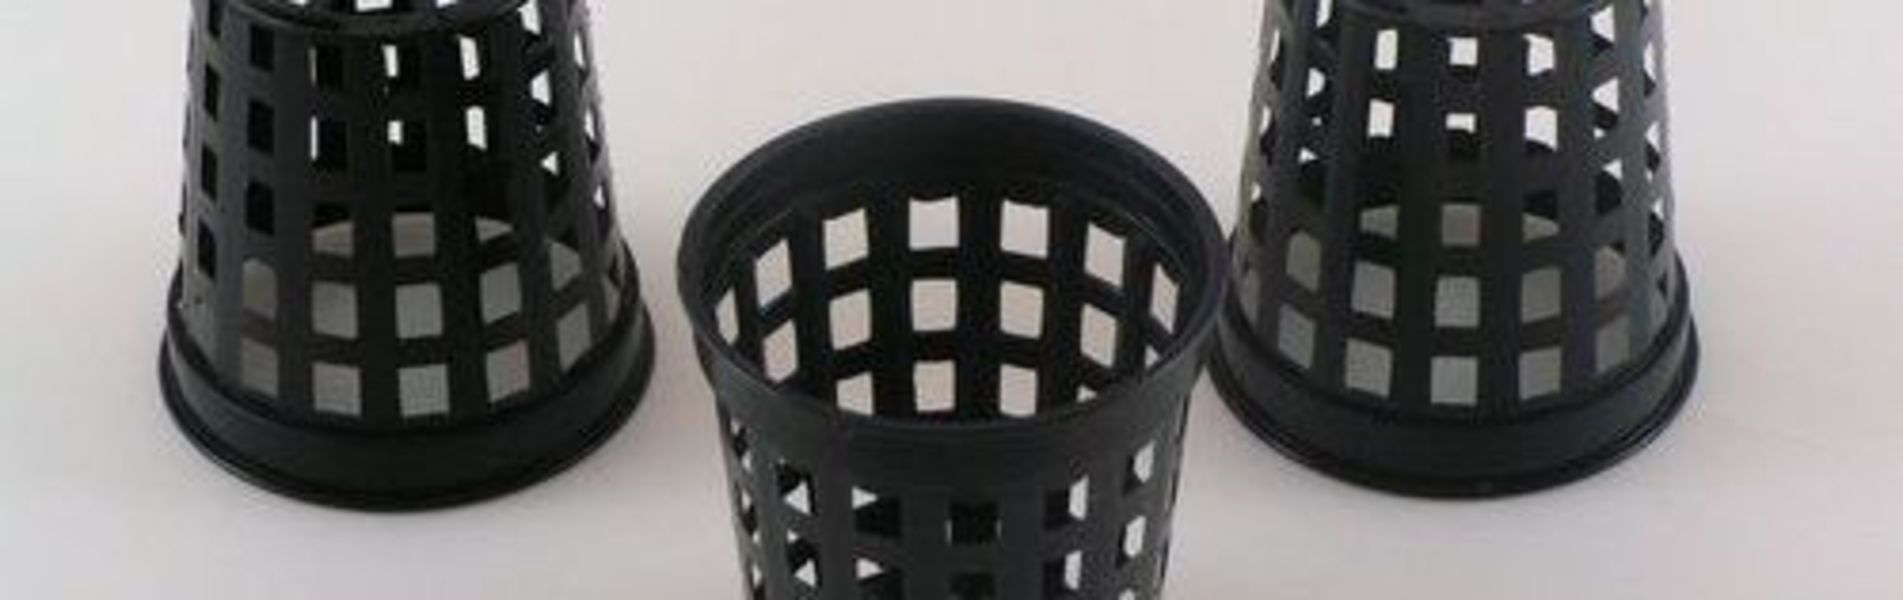 Deal of the Week, Hydroponic net plant pots, Special offer from Edensupplies